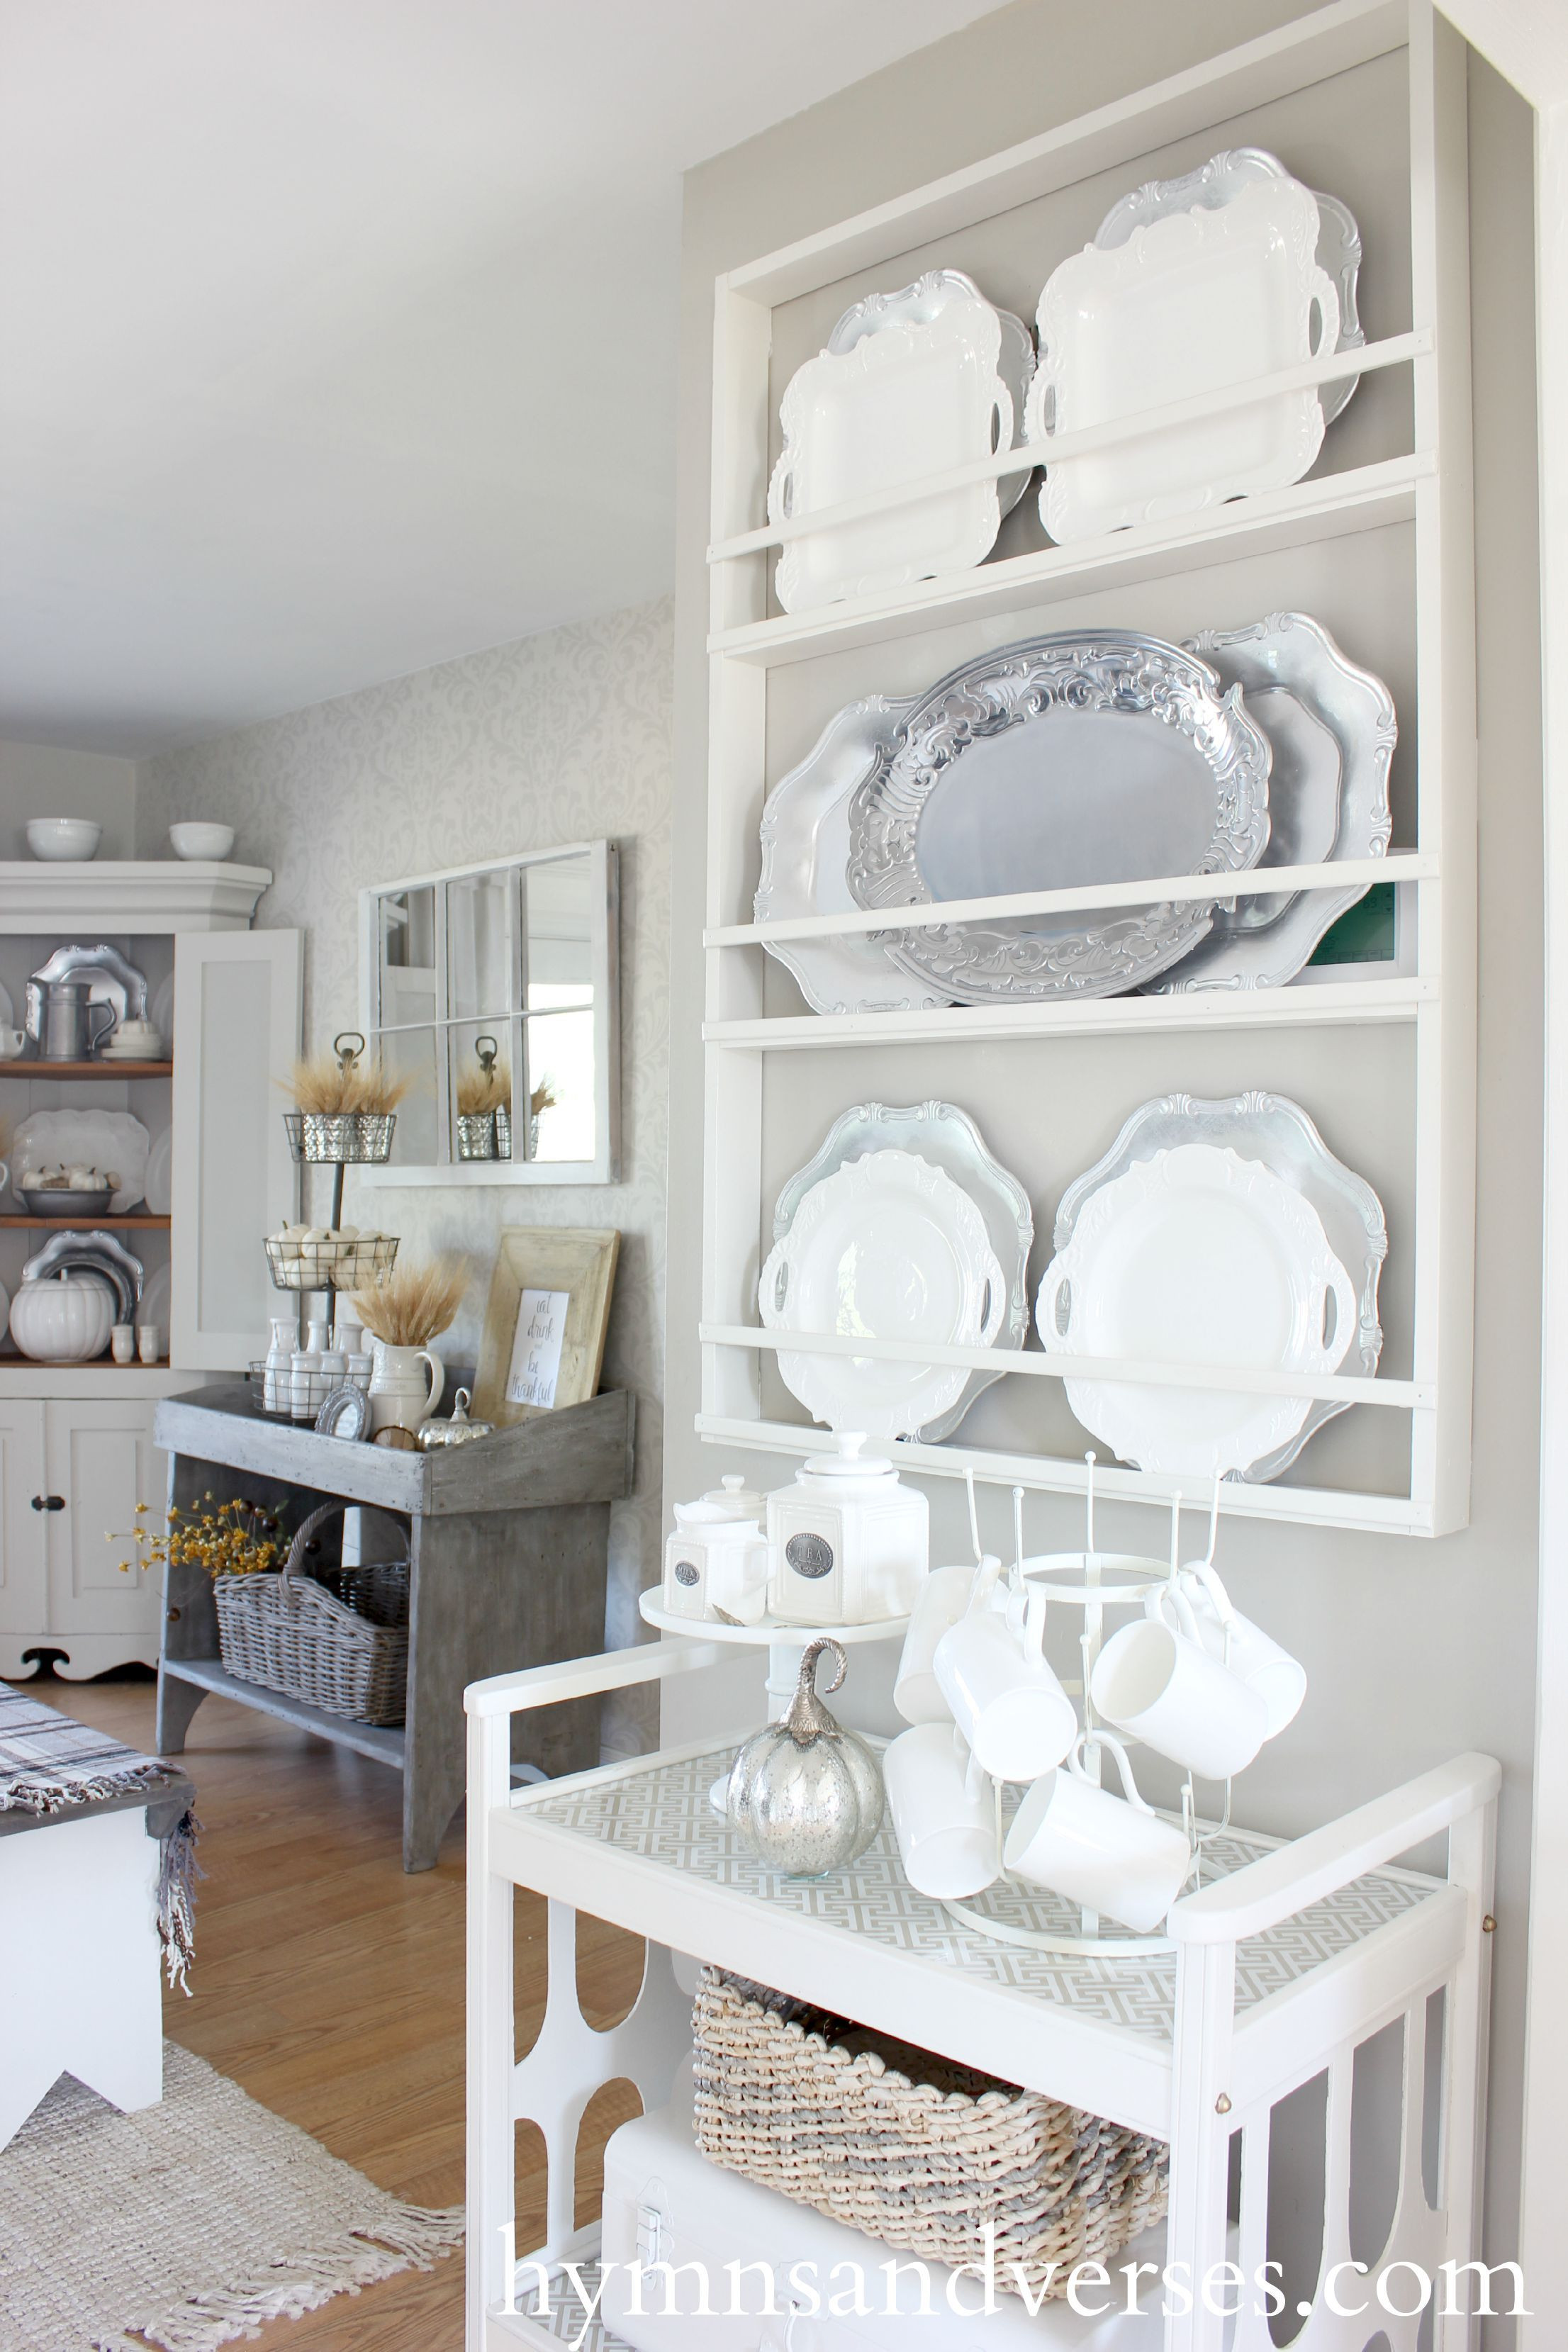 Best ideas about DIY Plate Rack . Save or Pin My Small Home Tour Hymns and Verses Now.